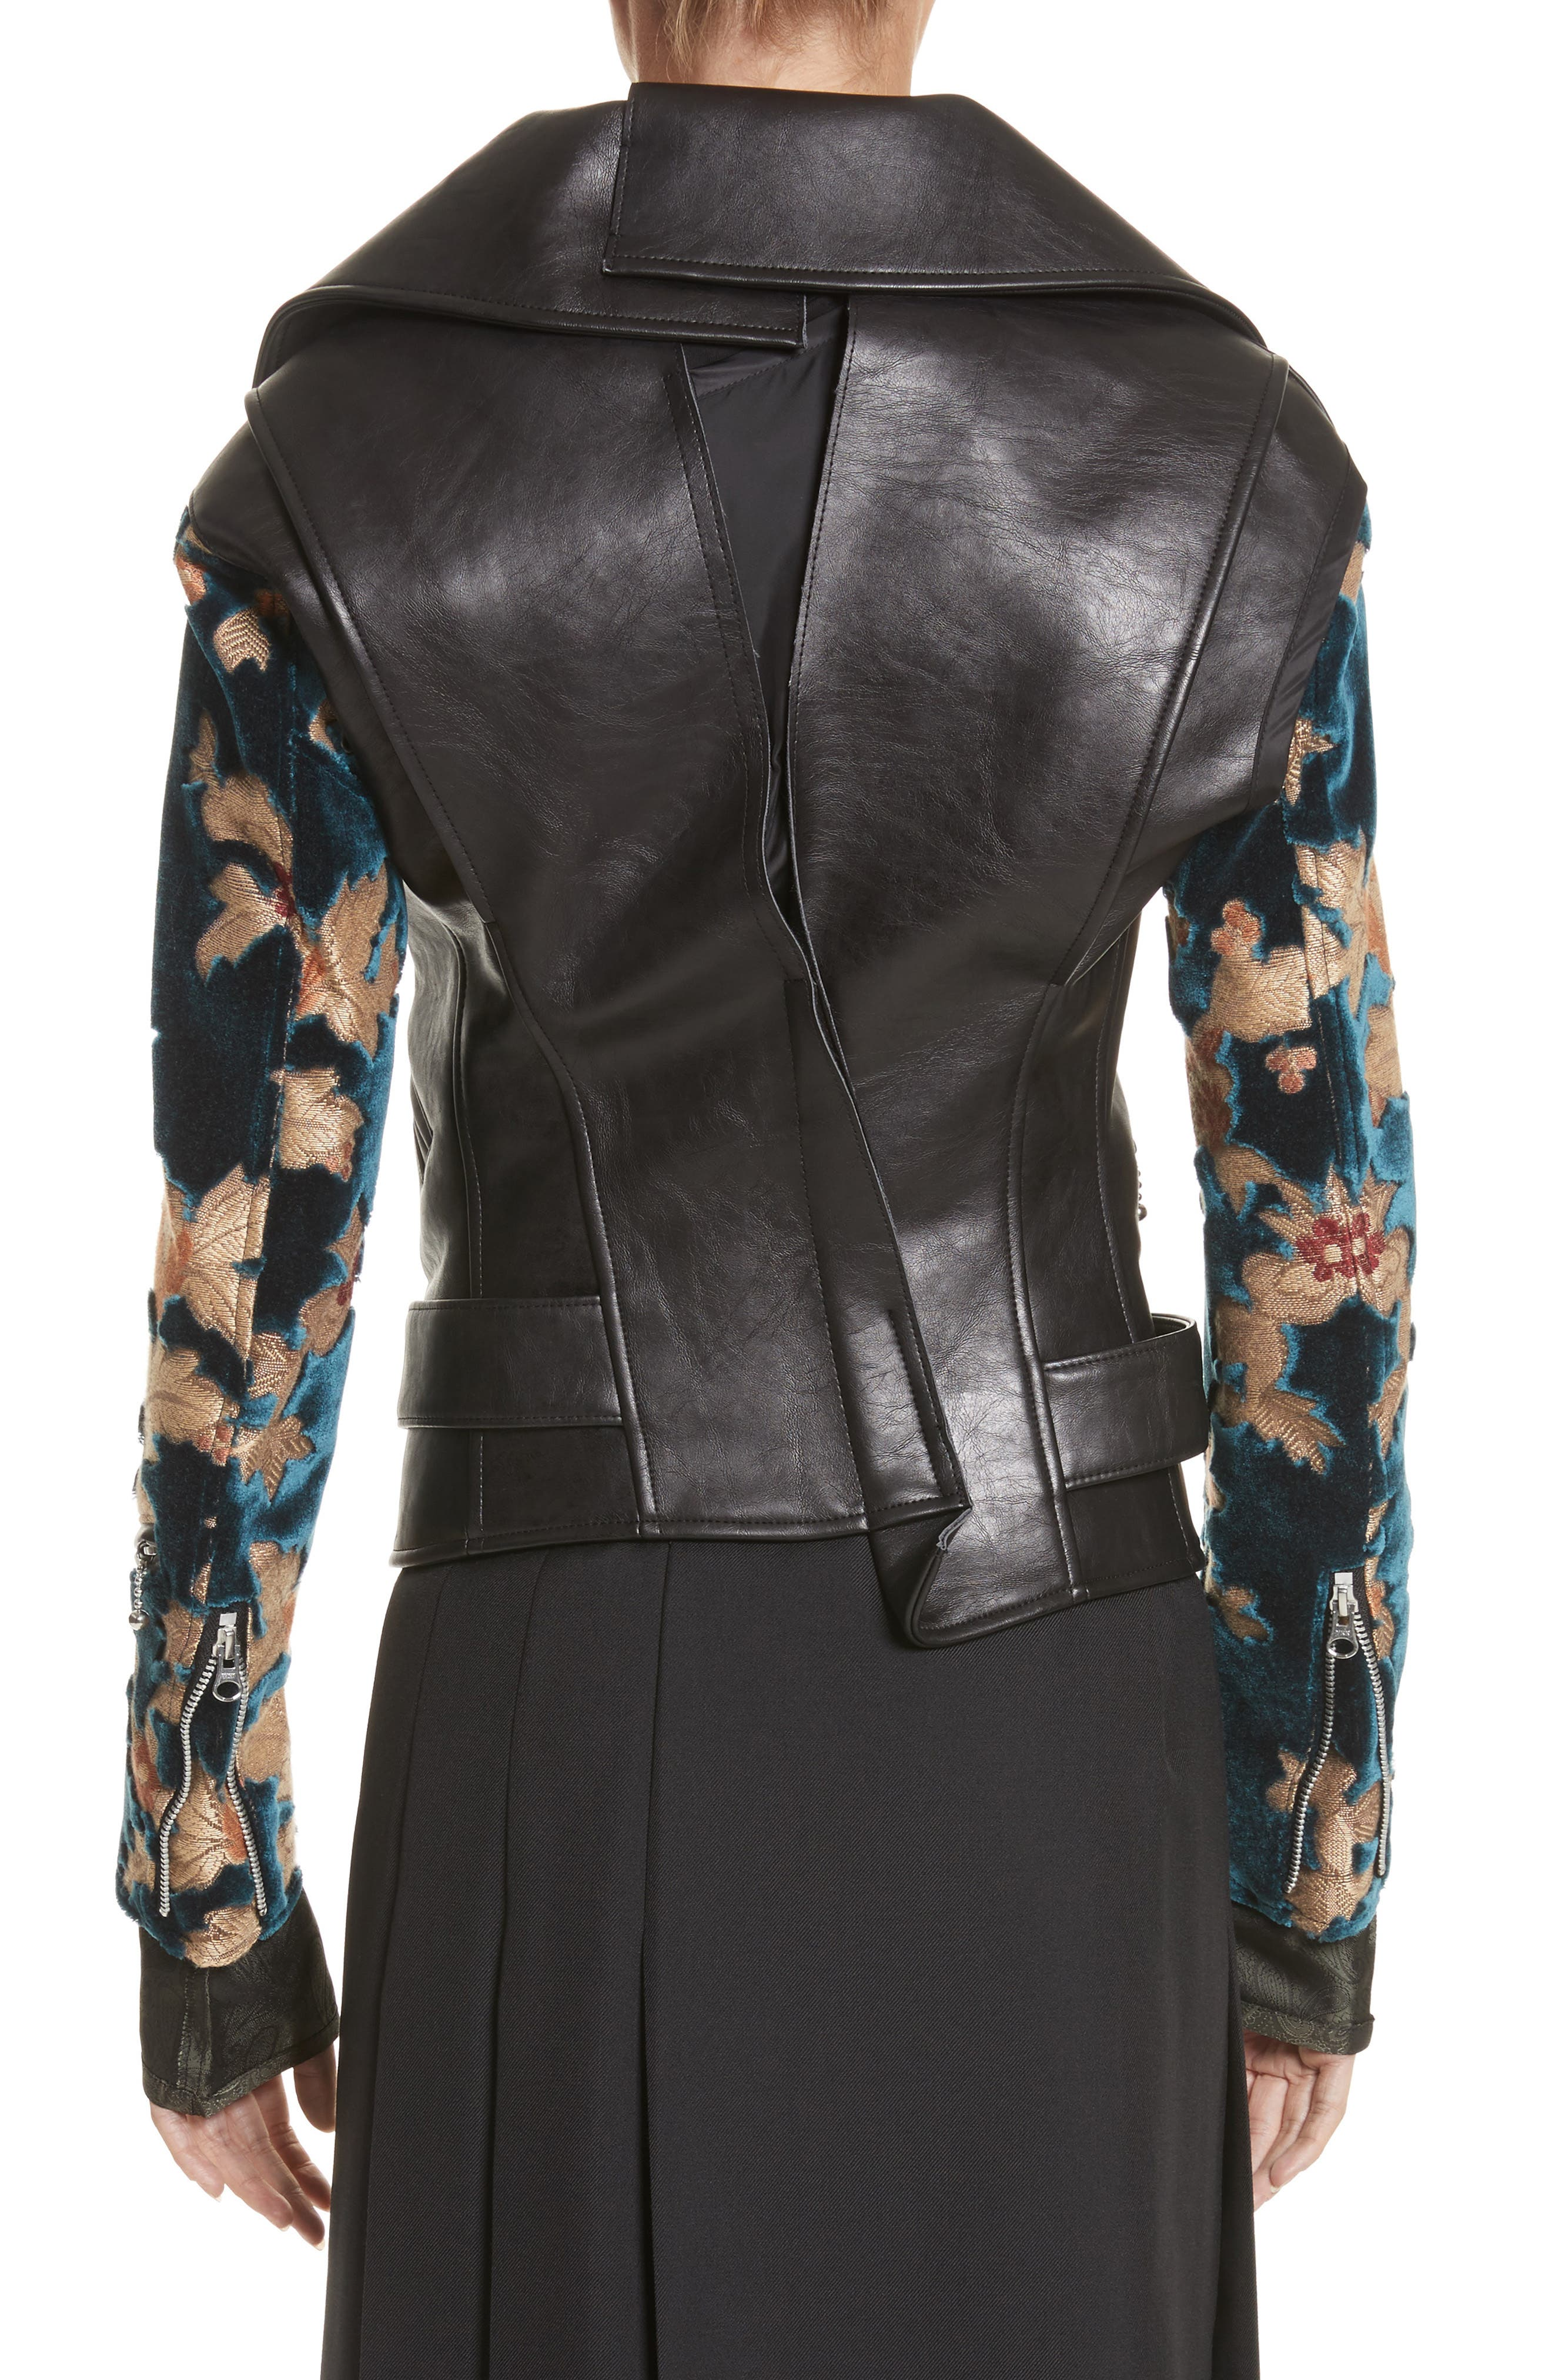 Faux Leather Moto Jacket with Floral Sleeves,                             Alternate thumbnail 2, color,                             Black X Blu/Bge